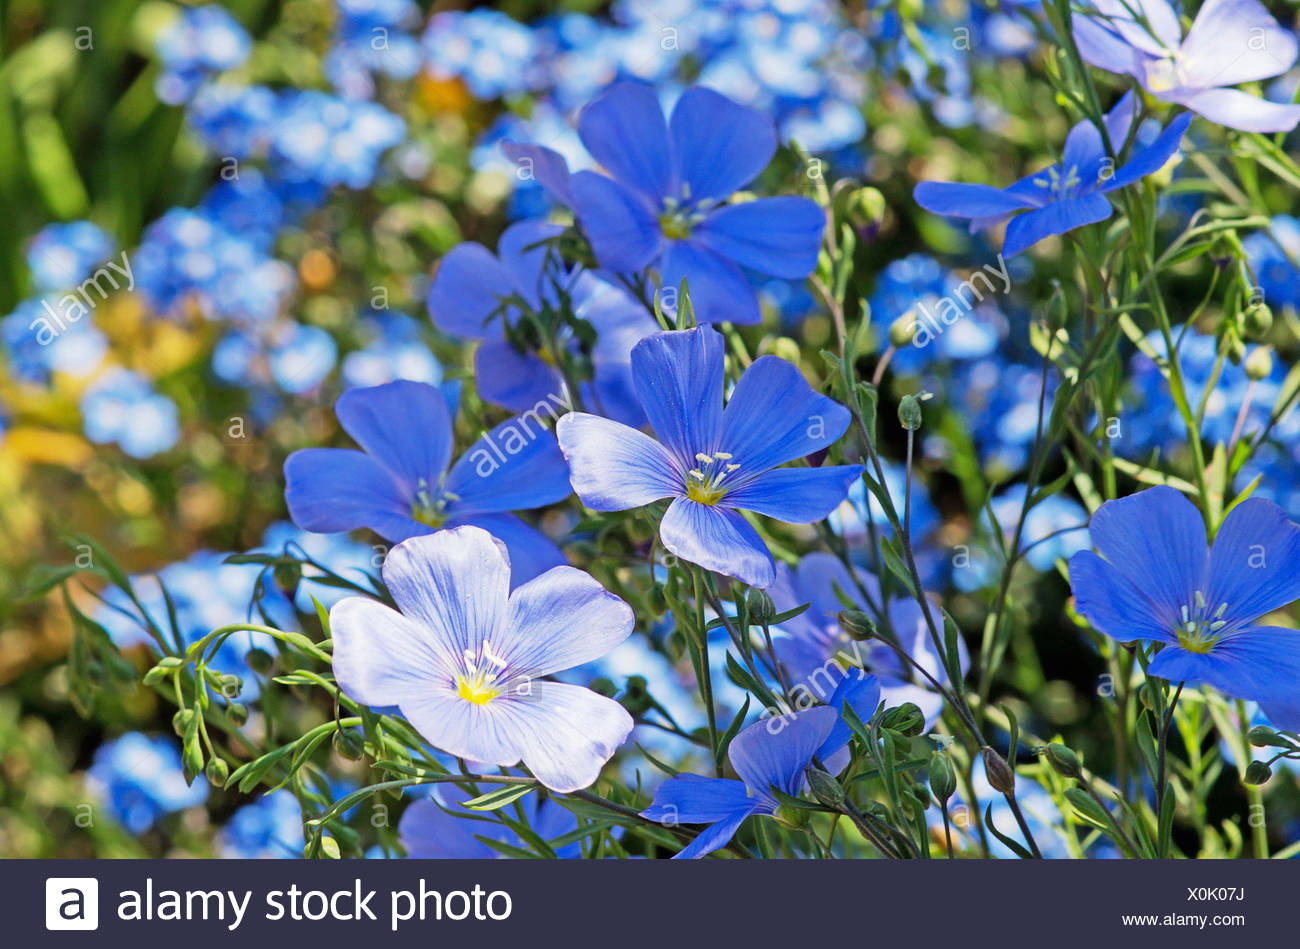 Small Blue Flowers Of Perennial Flax Linum Perenne Stock Photo